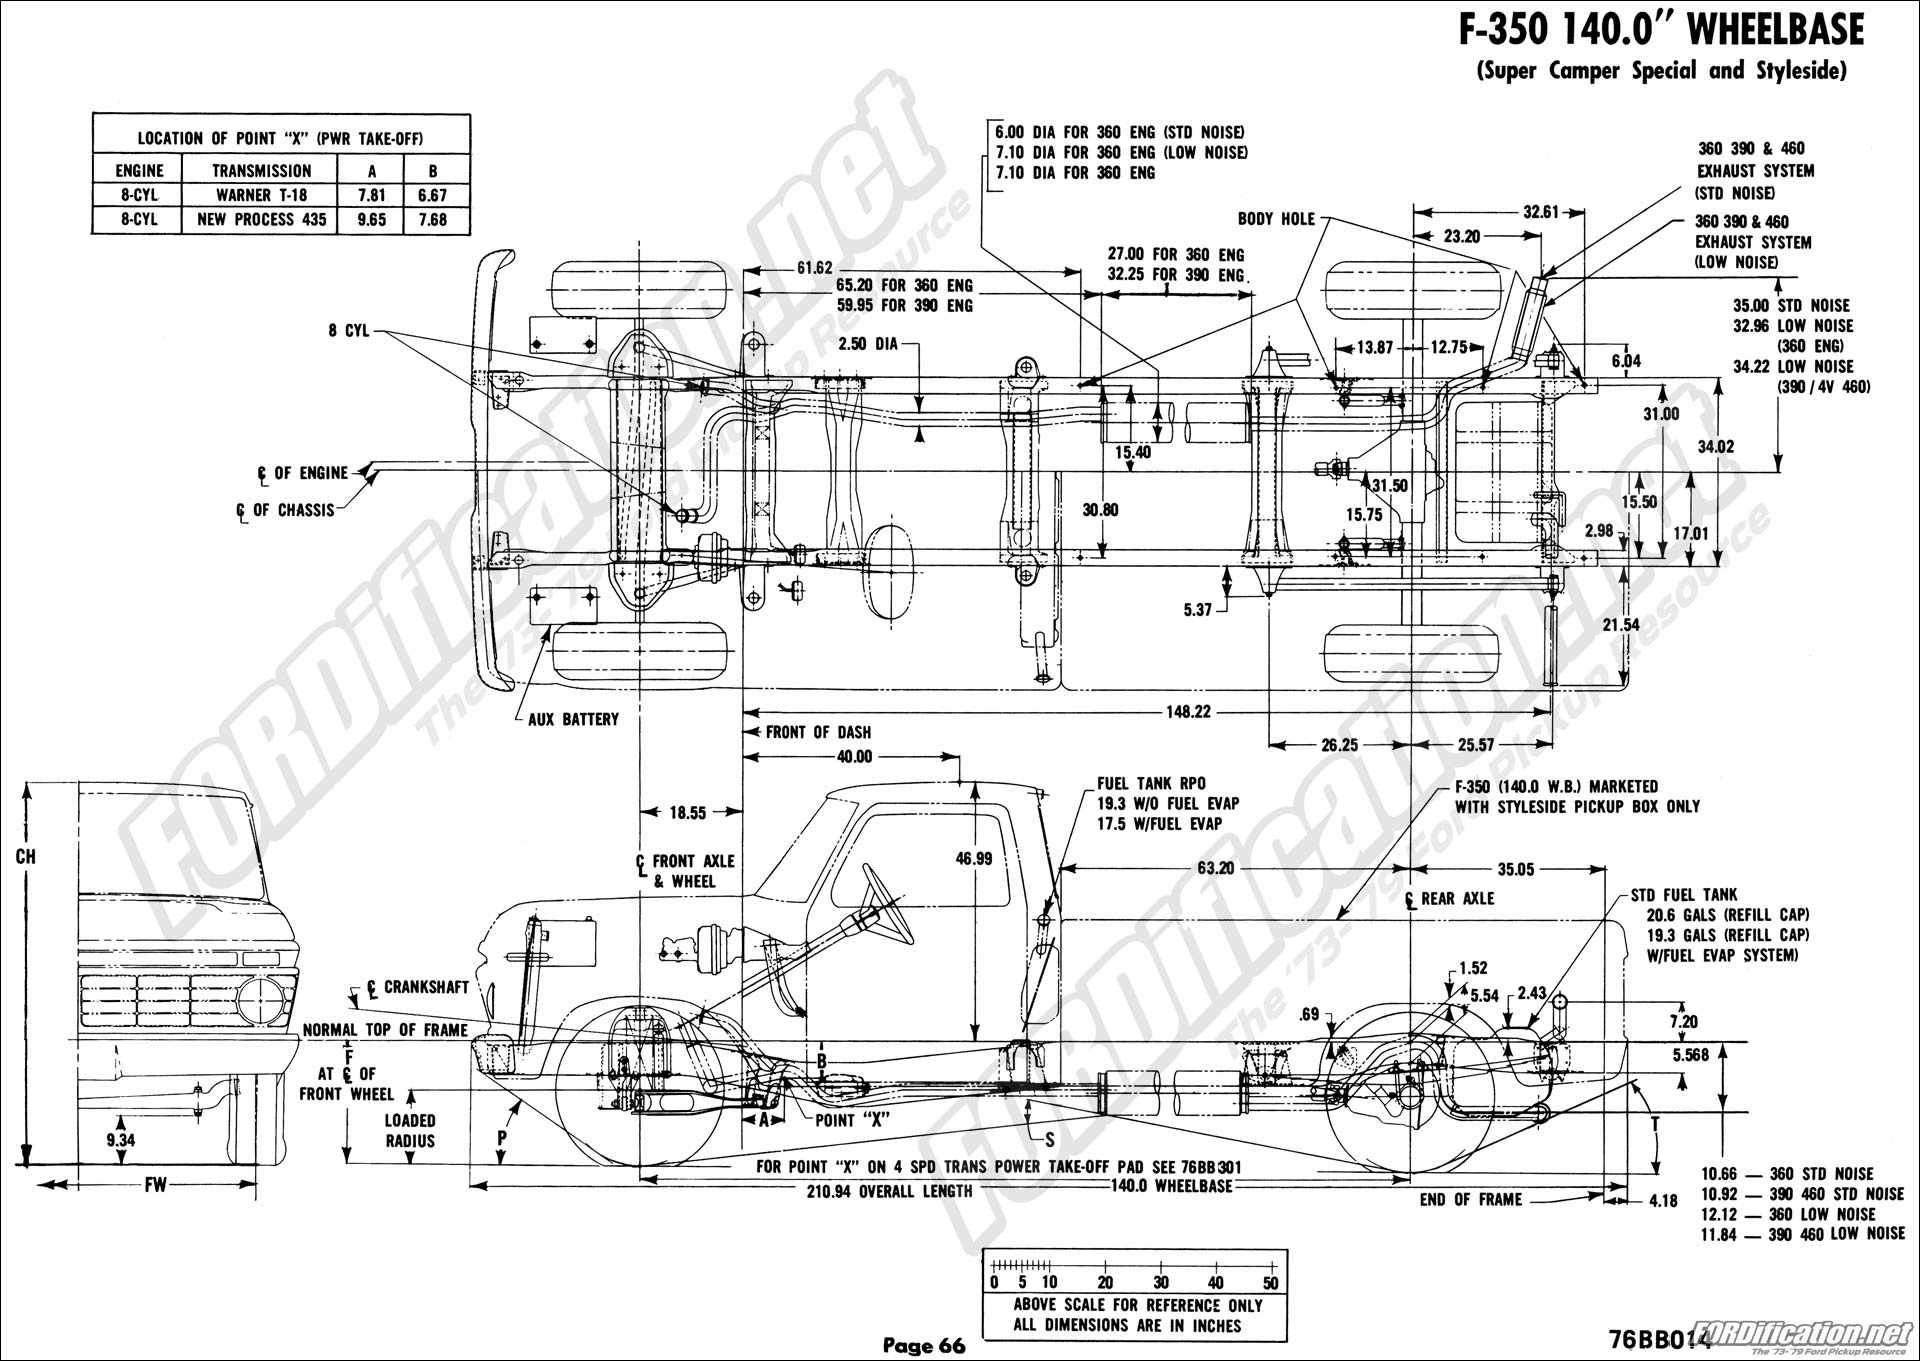 Breathtaking 85 ford bronco wiring diagram contemporary best image